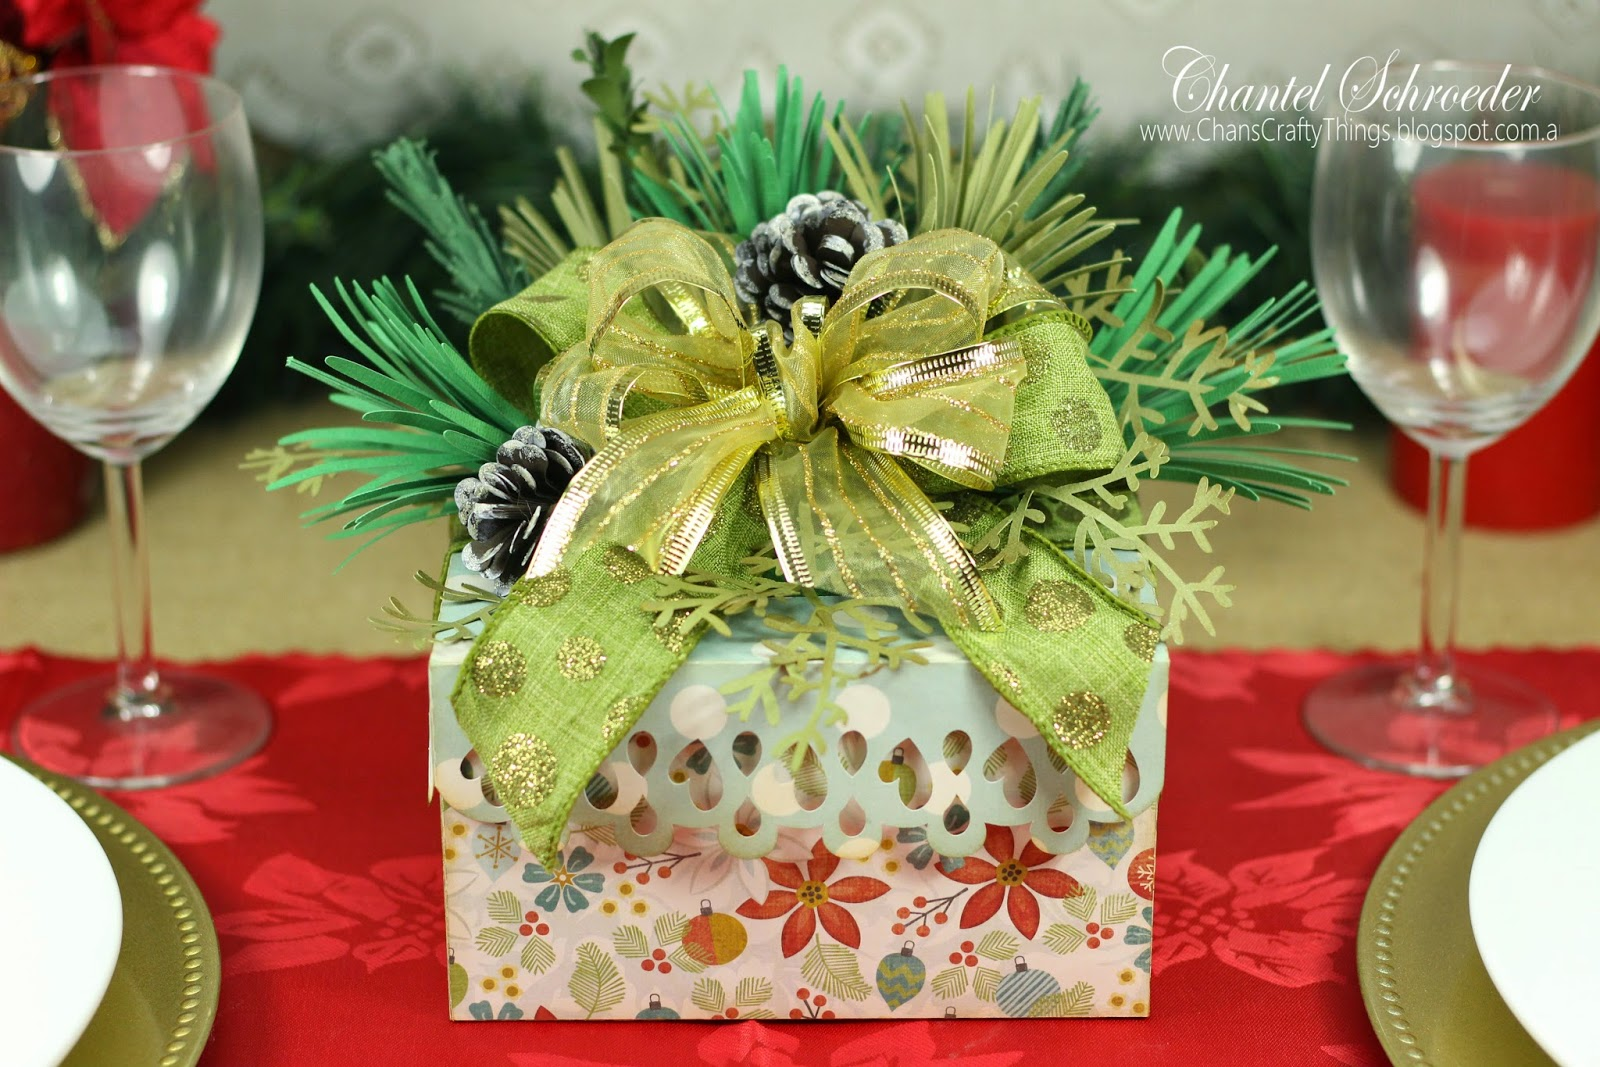 Wintergreen Gift Box Bouquet Centerpiece Front View